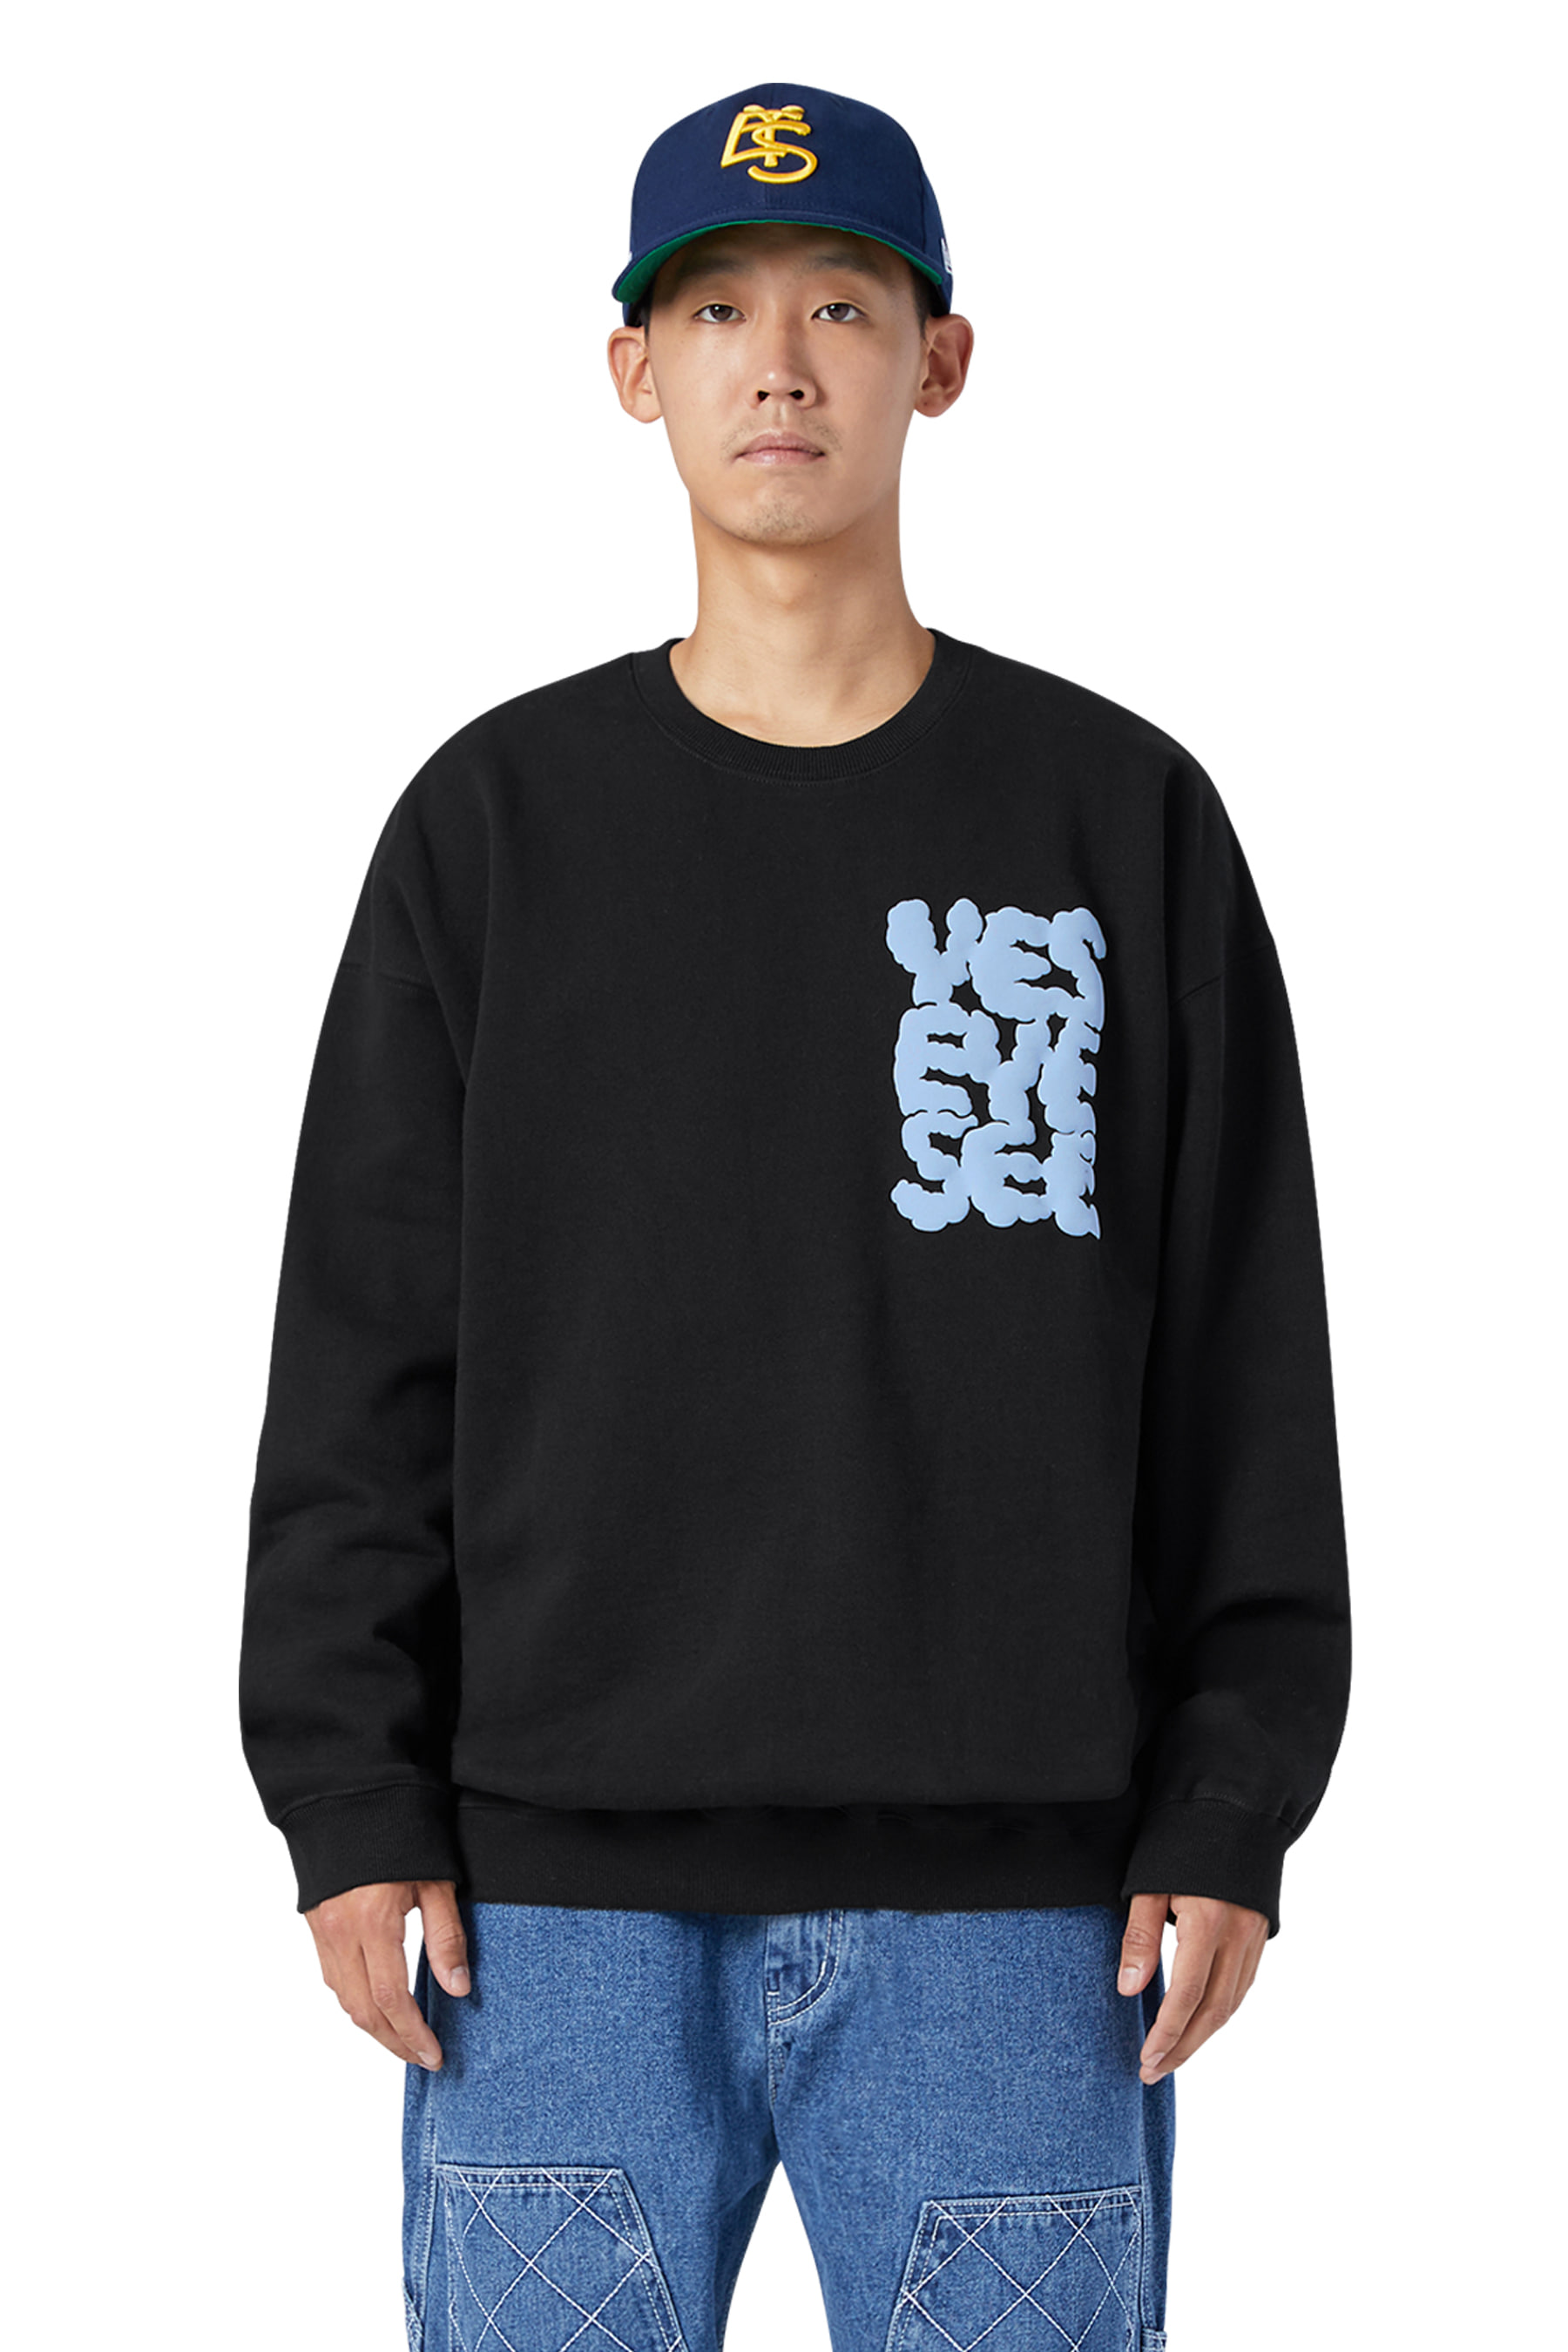 Y.E.S Heights Sweatshirts Black